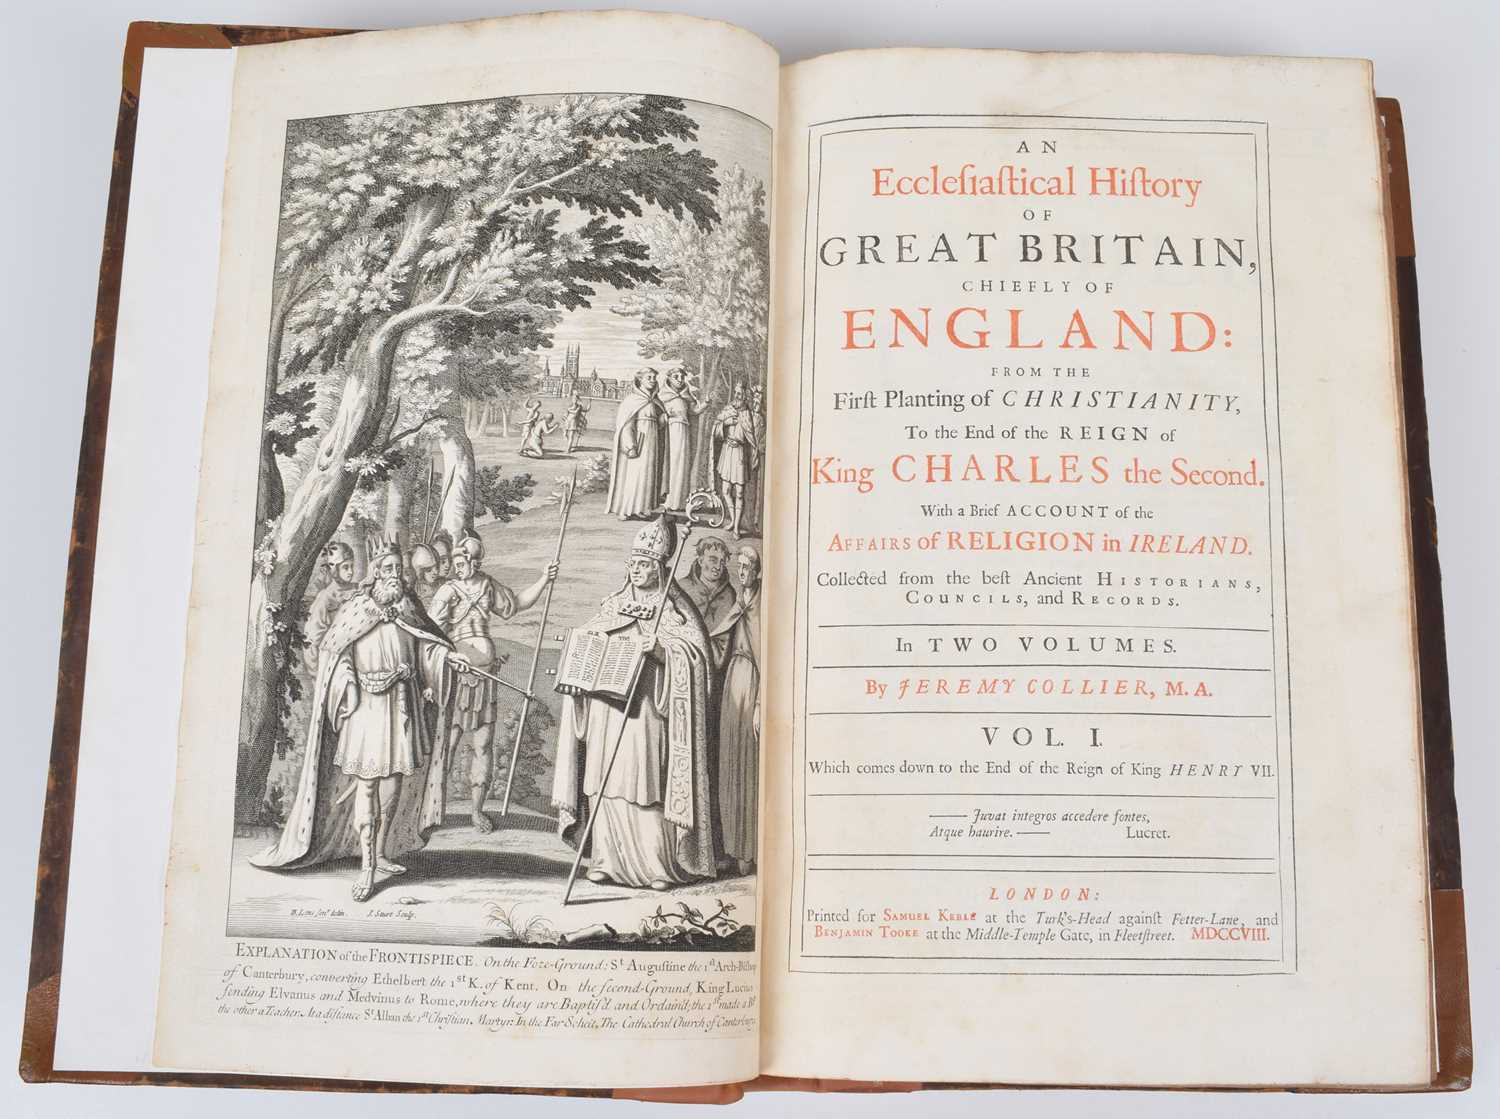 Lot 42-Collection of books to include